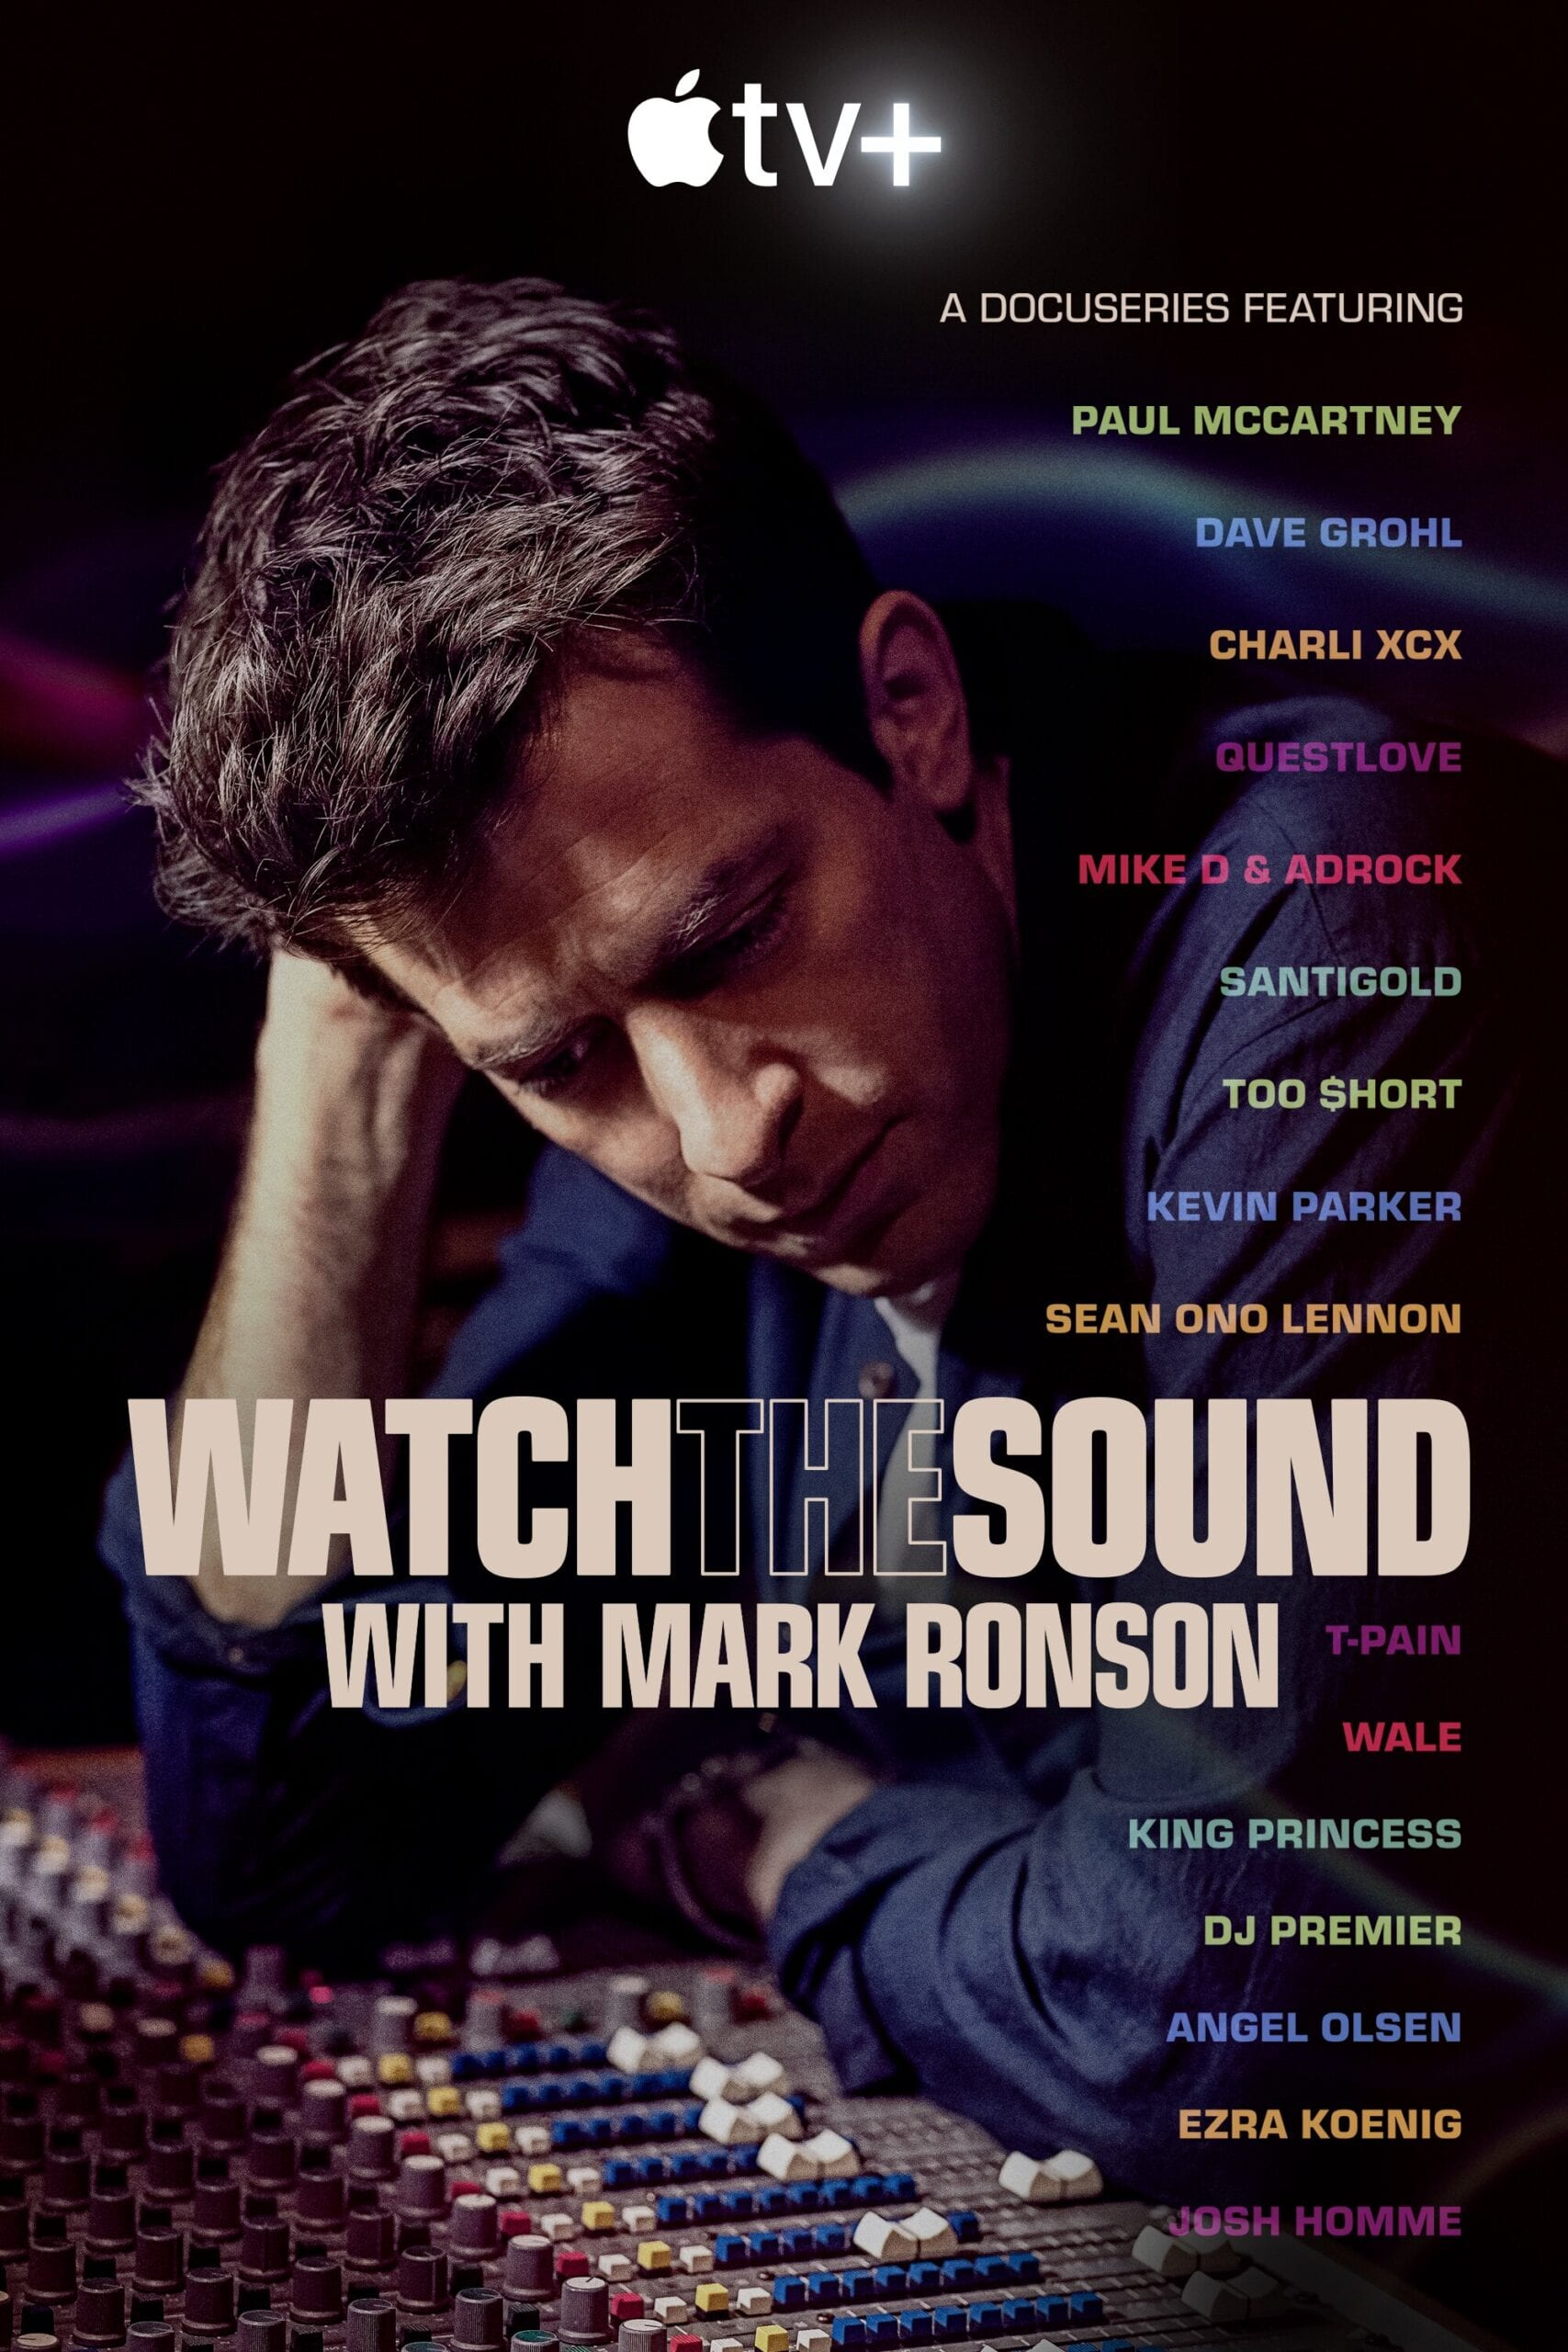 Watch the Sound with Mark Ronson teaser image